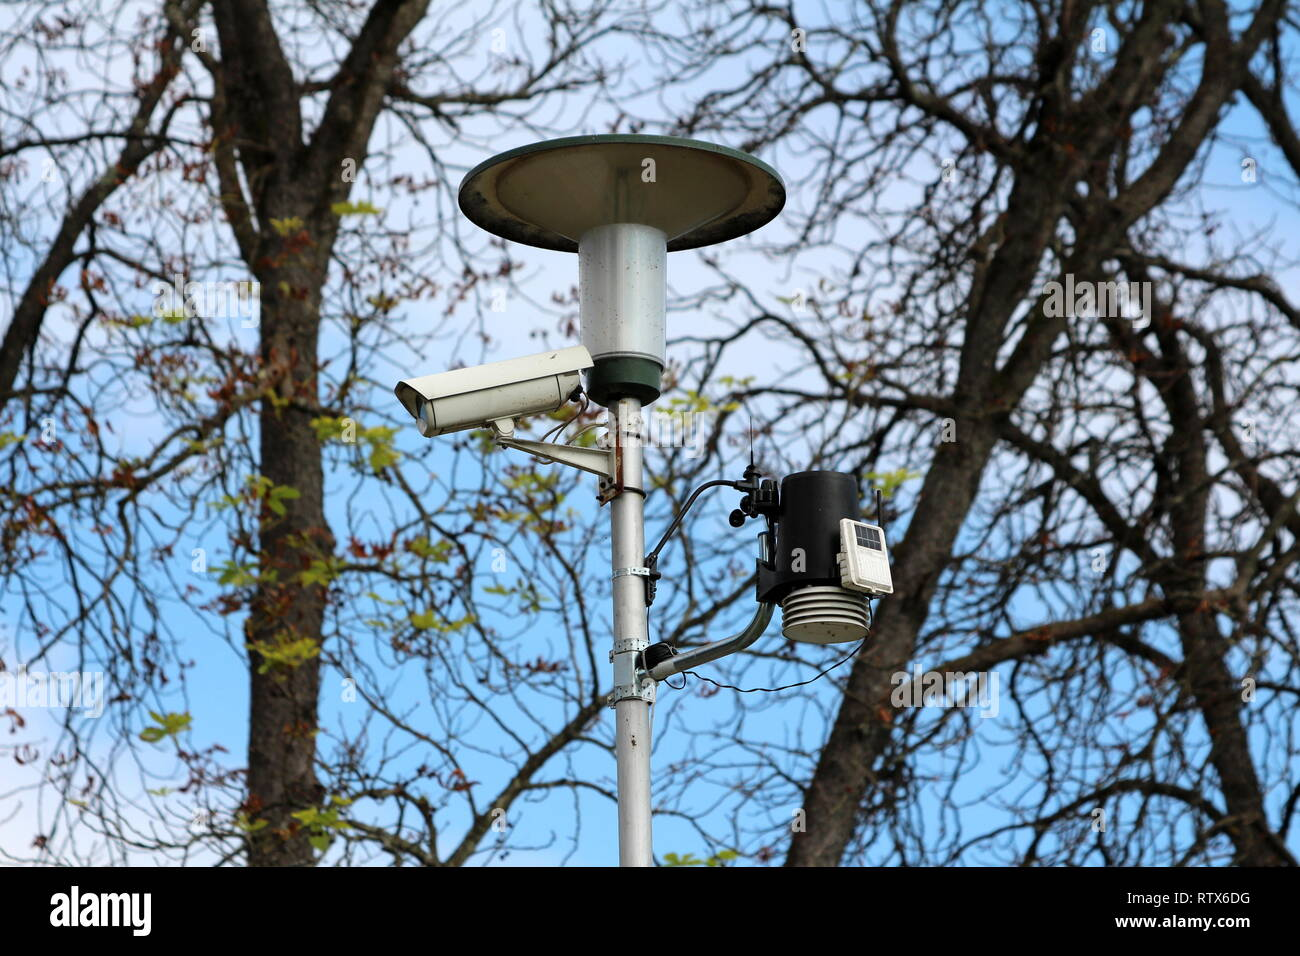 Street light on metal post with mounted surveillance camera and various measuring devices with clear blue sky and trees in background Stock Photo